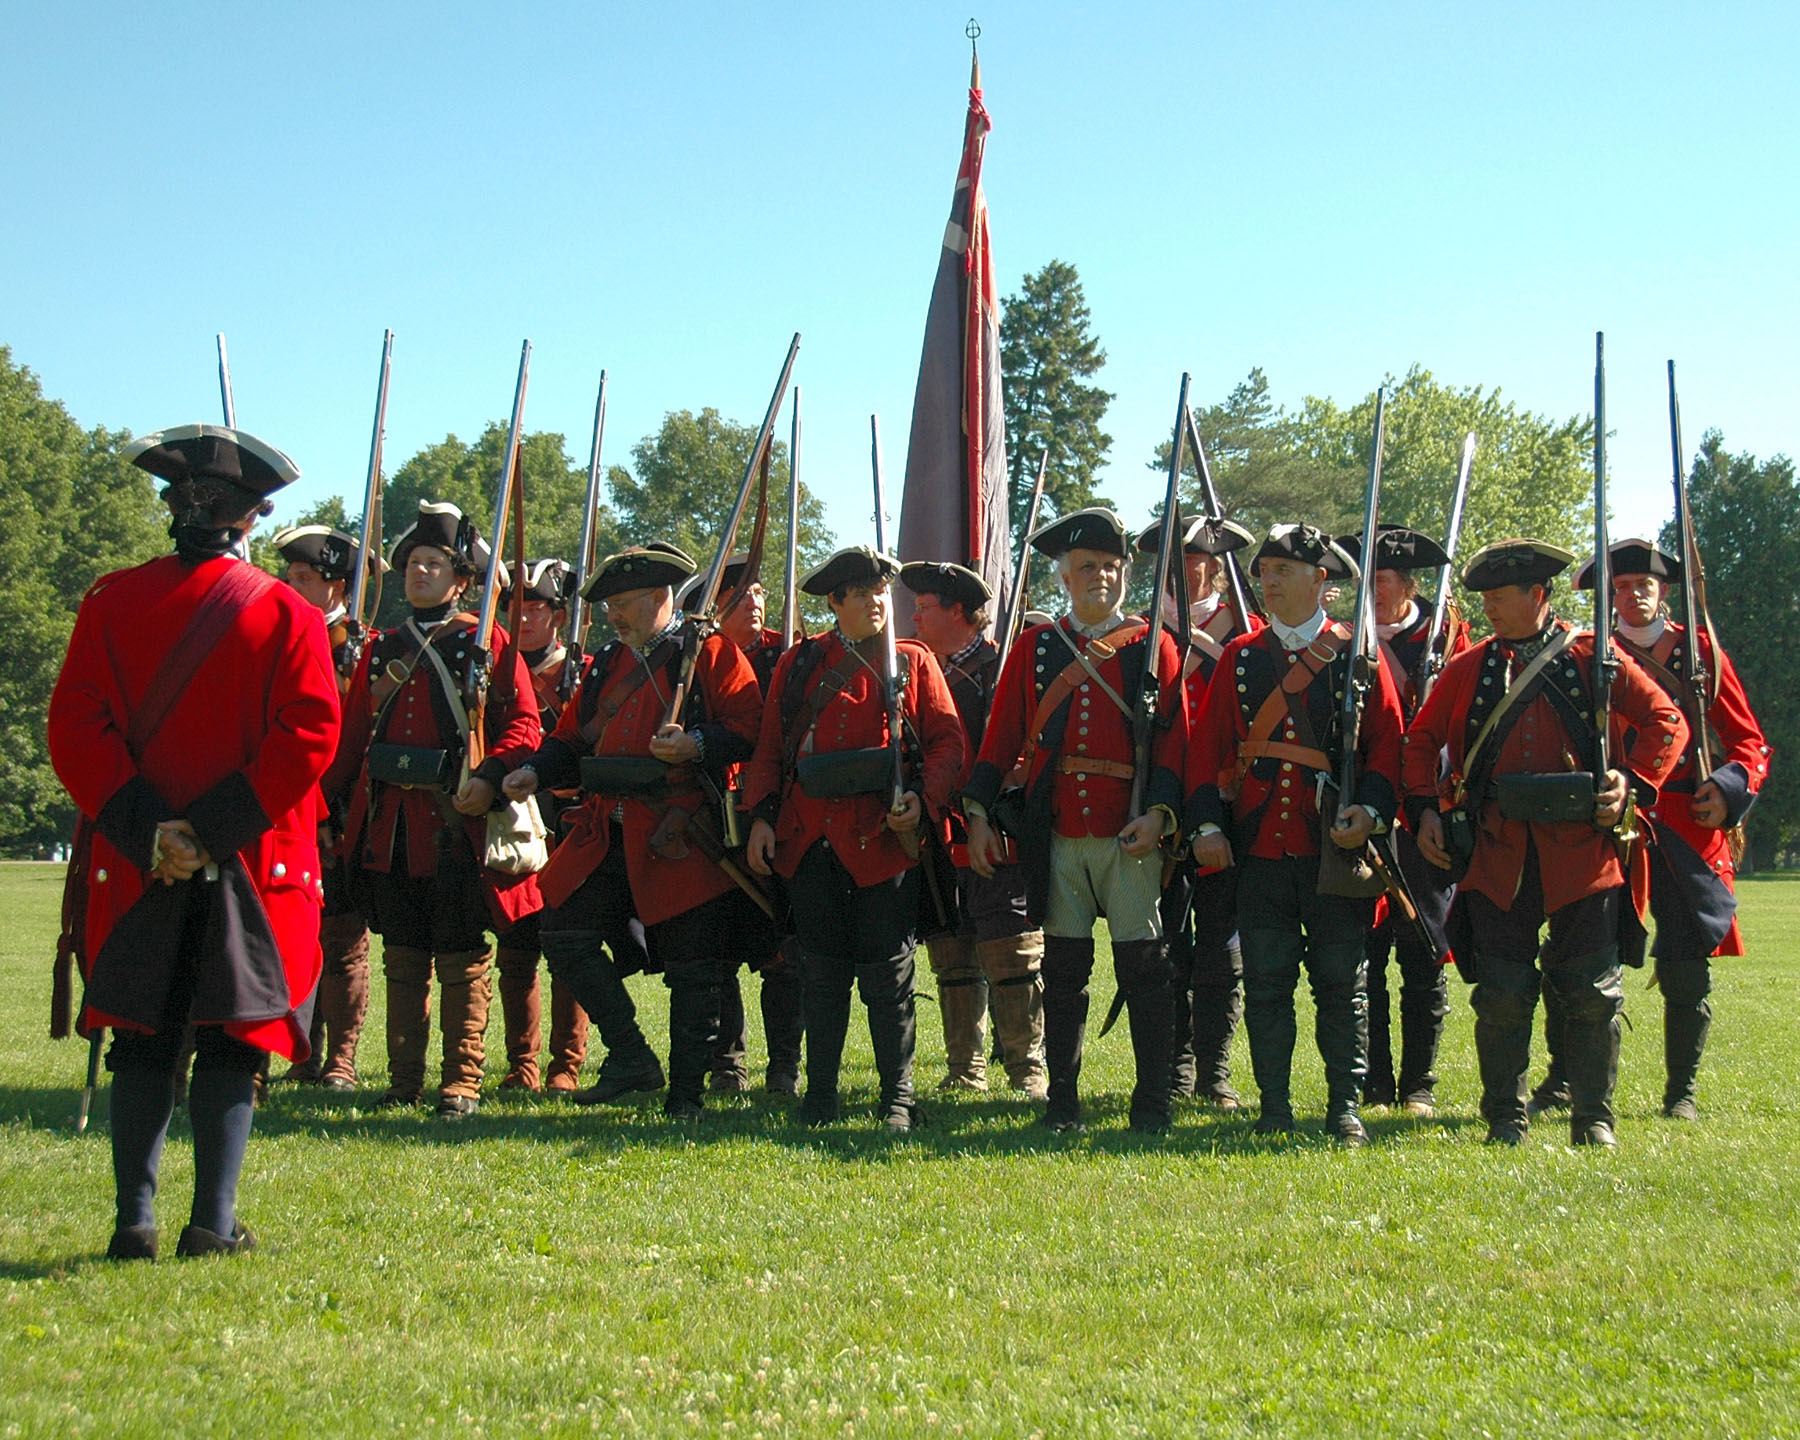 men in red jackets stand in a line with muskets.